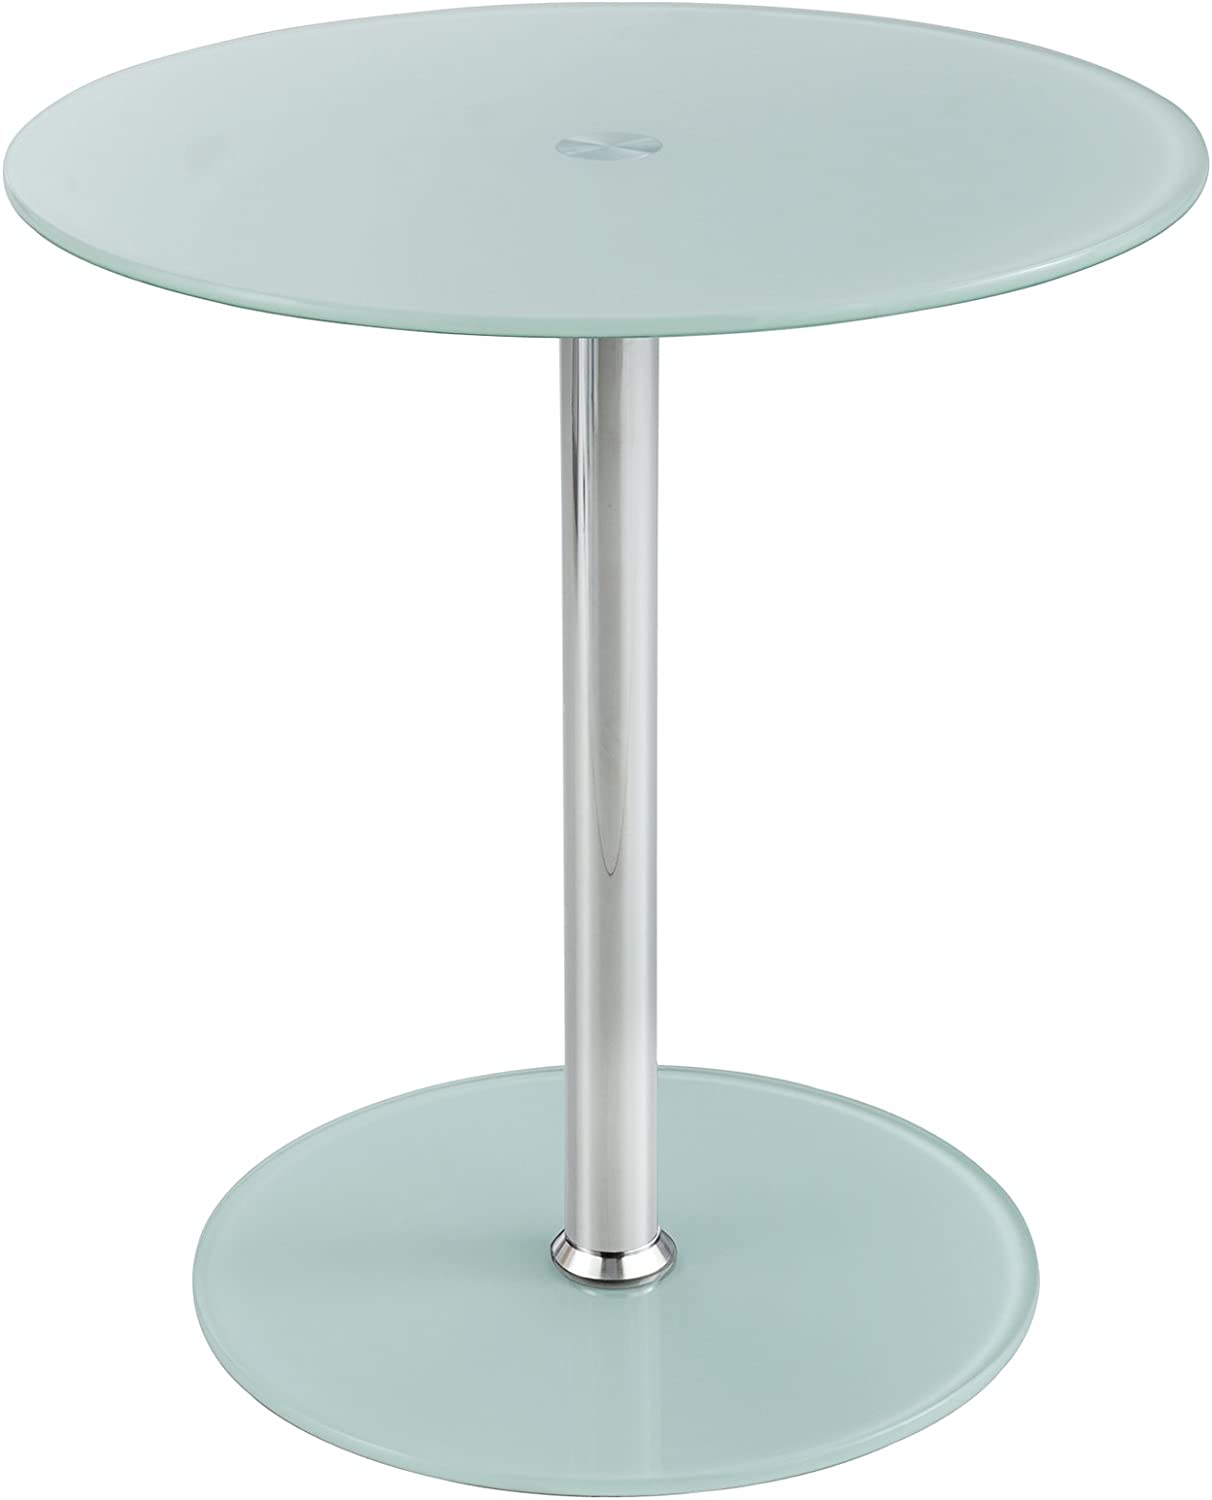 Safco Products Products Glass Accent Table, White (5095WH)